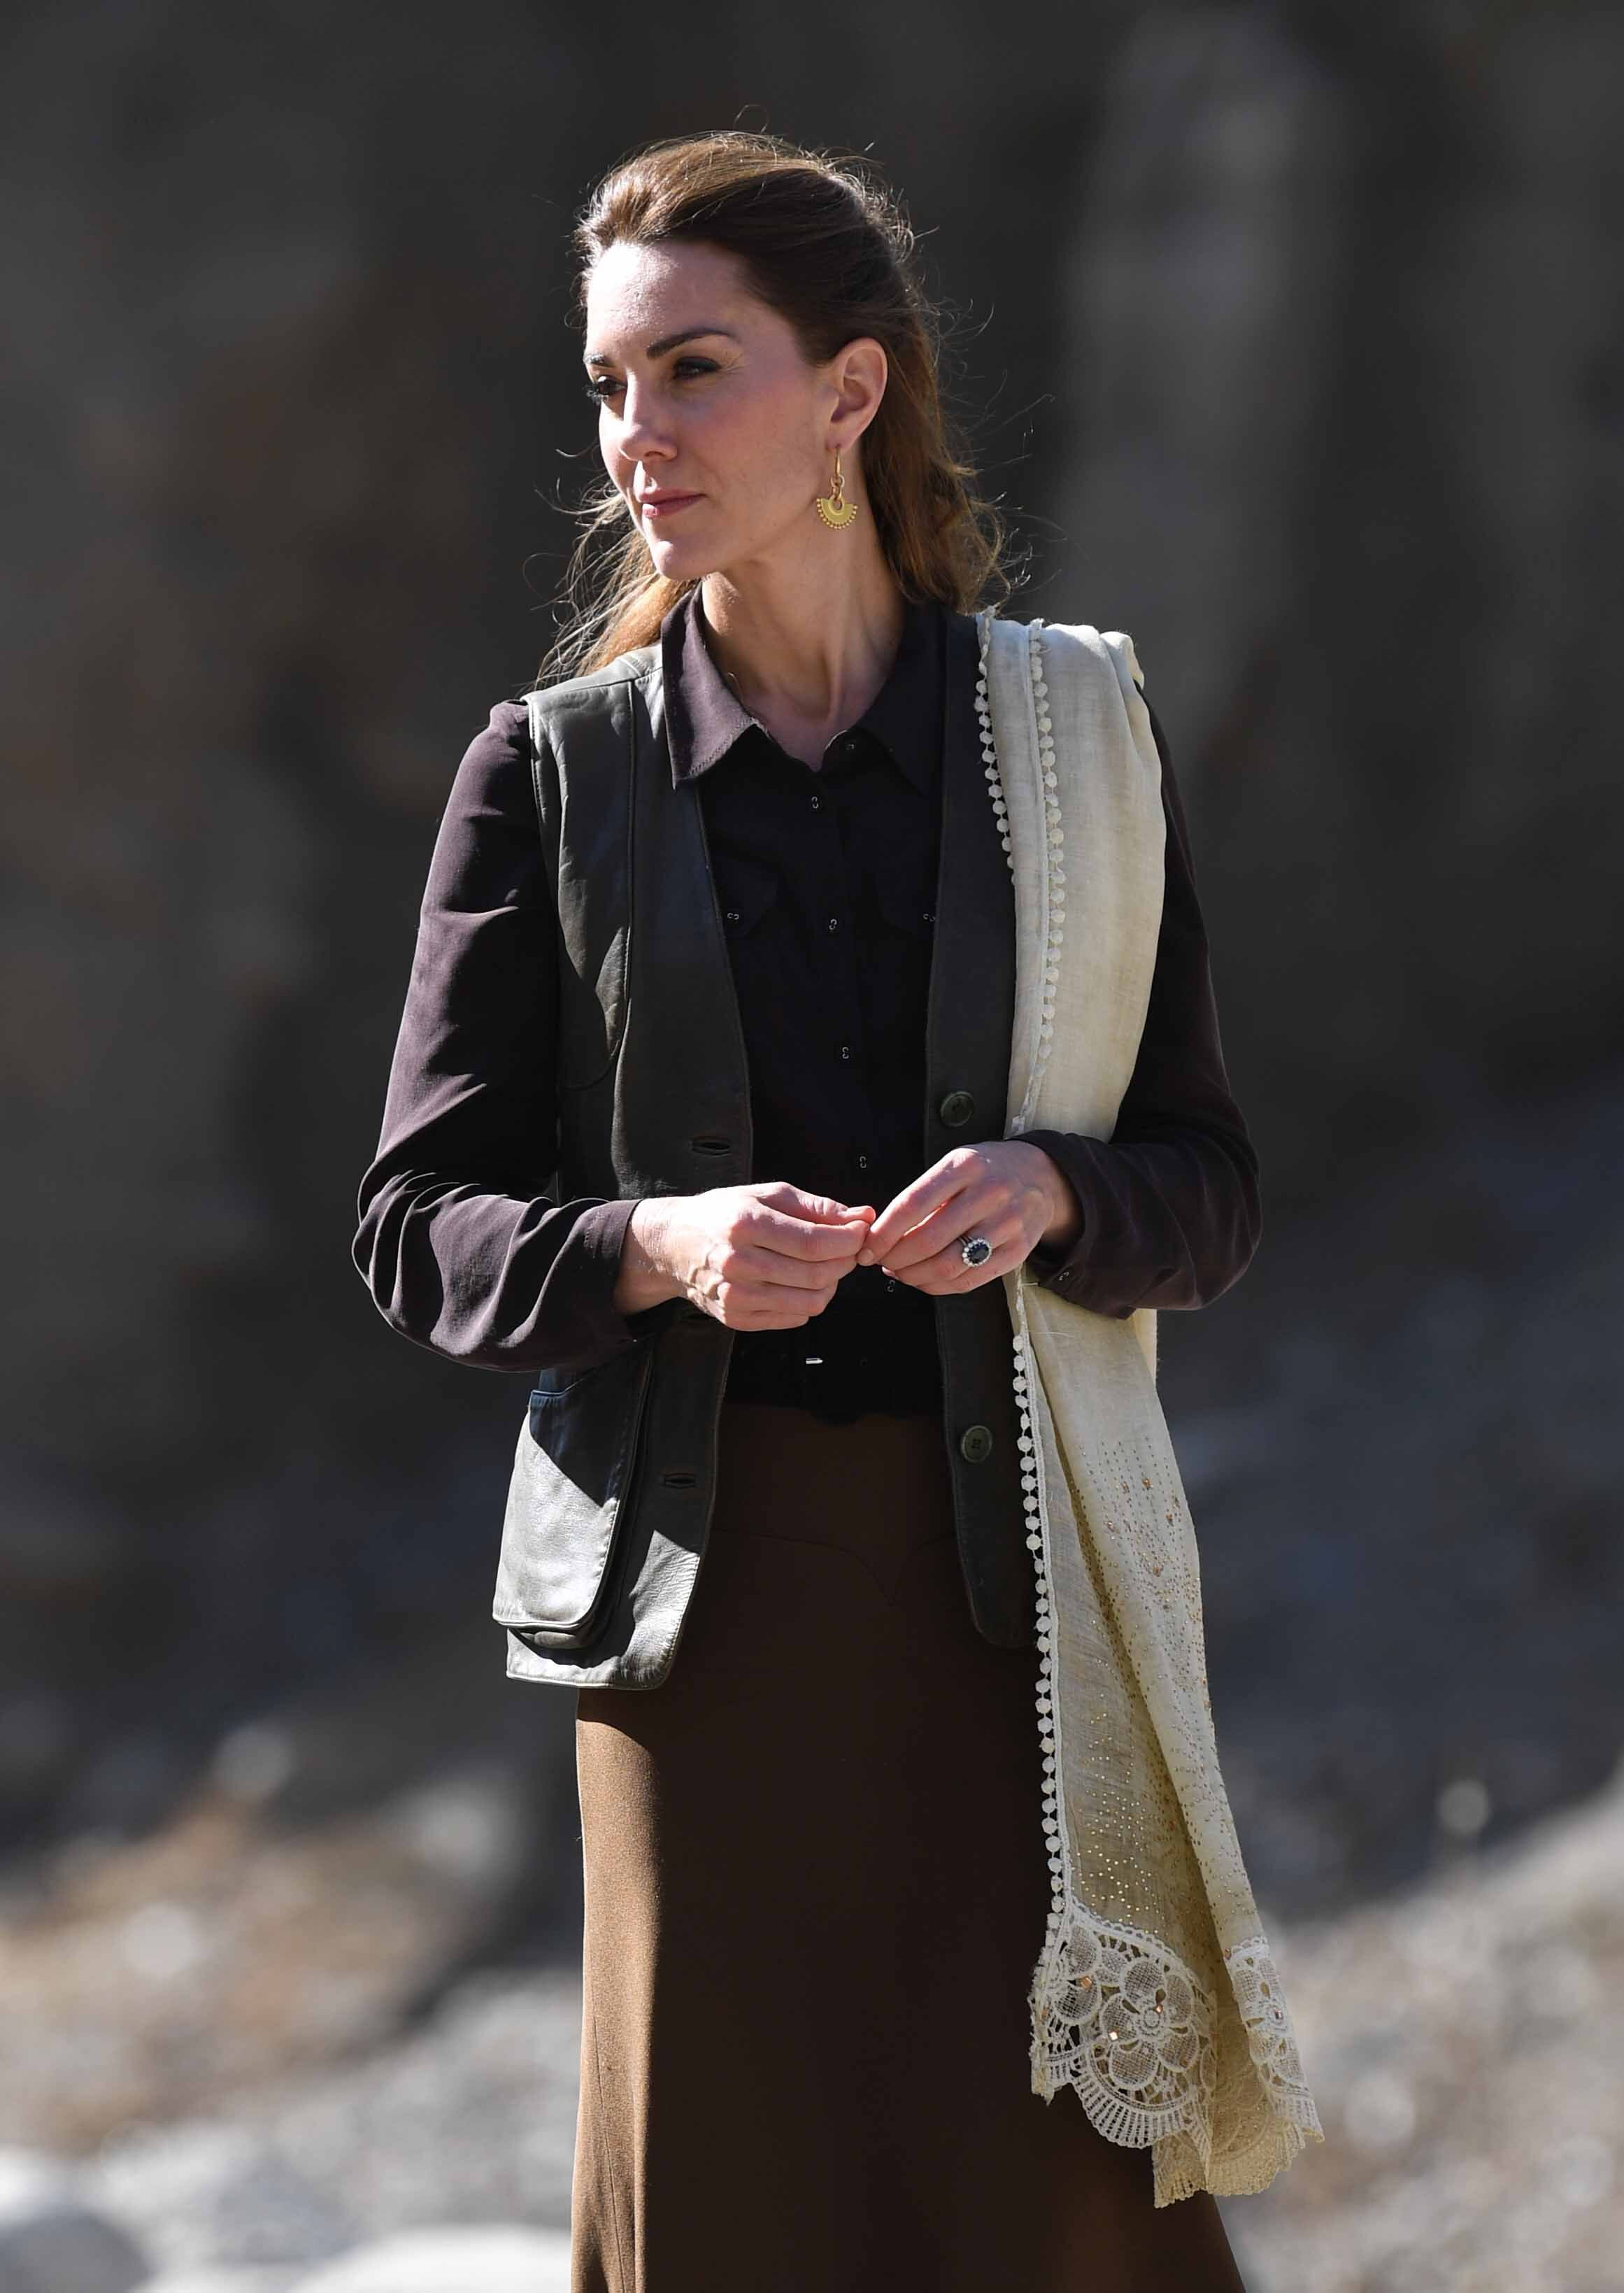 Kate Middleton tours the glaciers in Pakistan.   Source: Getty Images